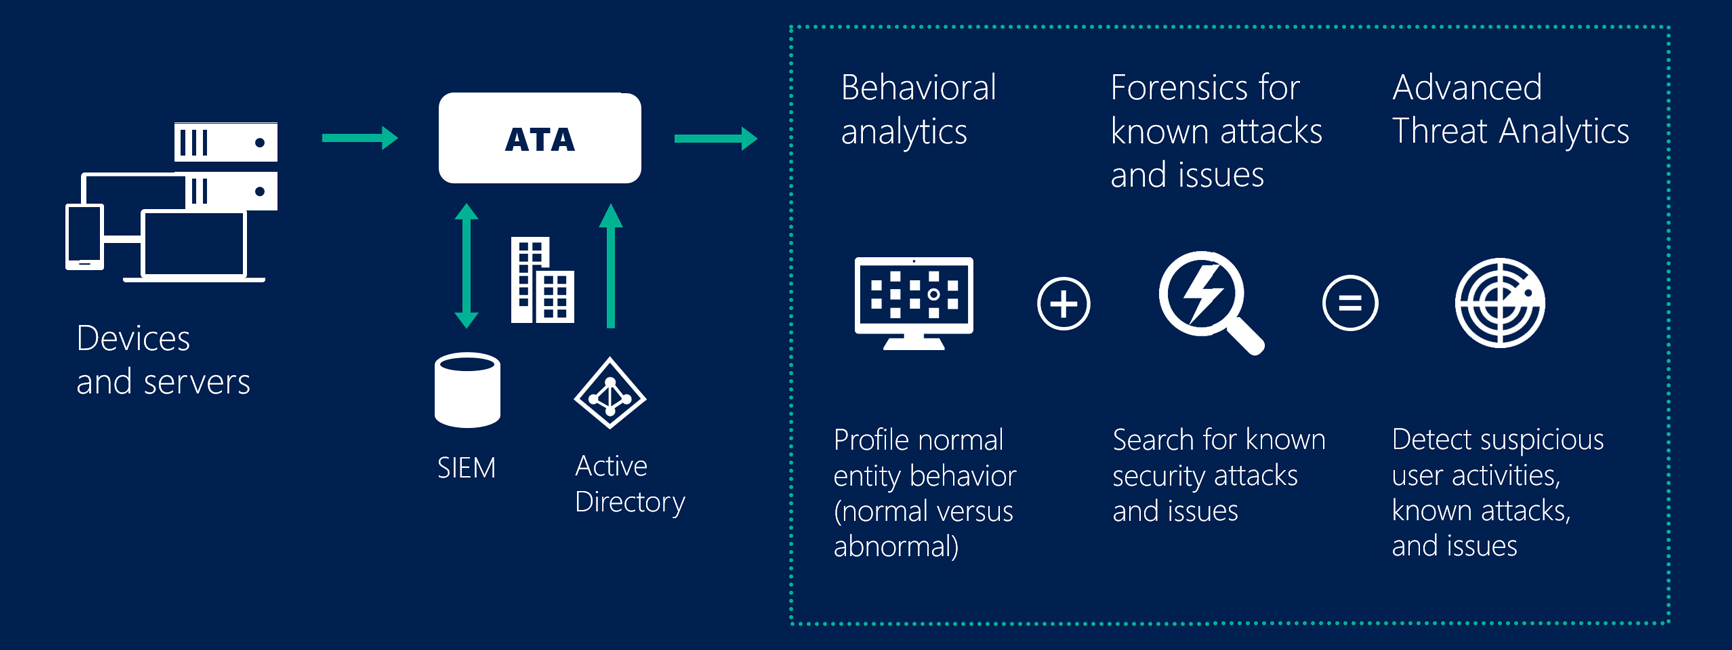 Infographic showing how Microsoft Advanced Threat Analytics protects devices and servers with behavioral analytics and scanning for known attacks